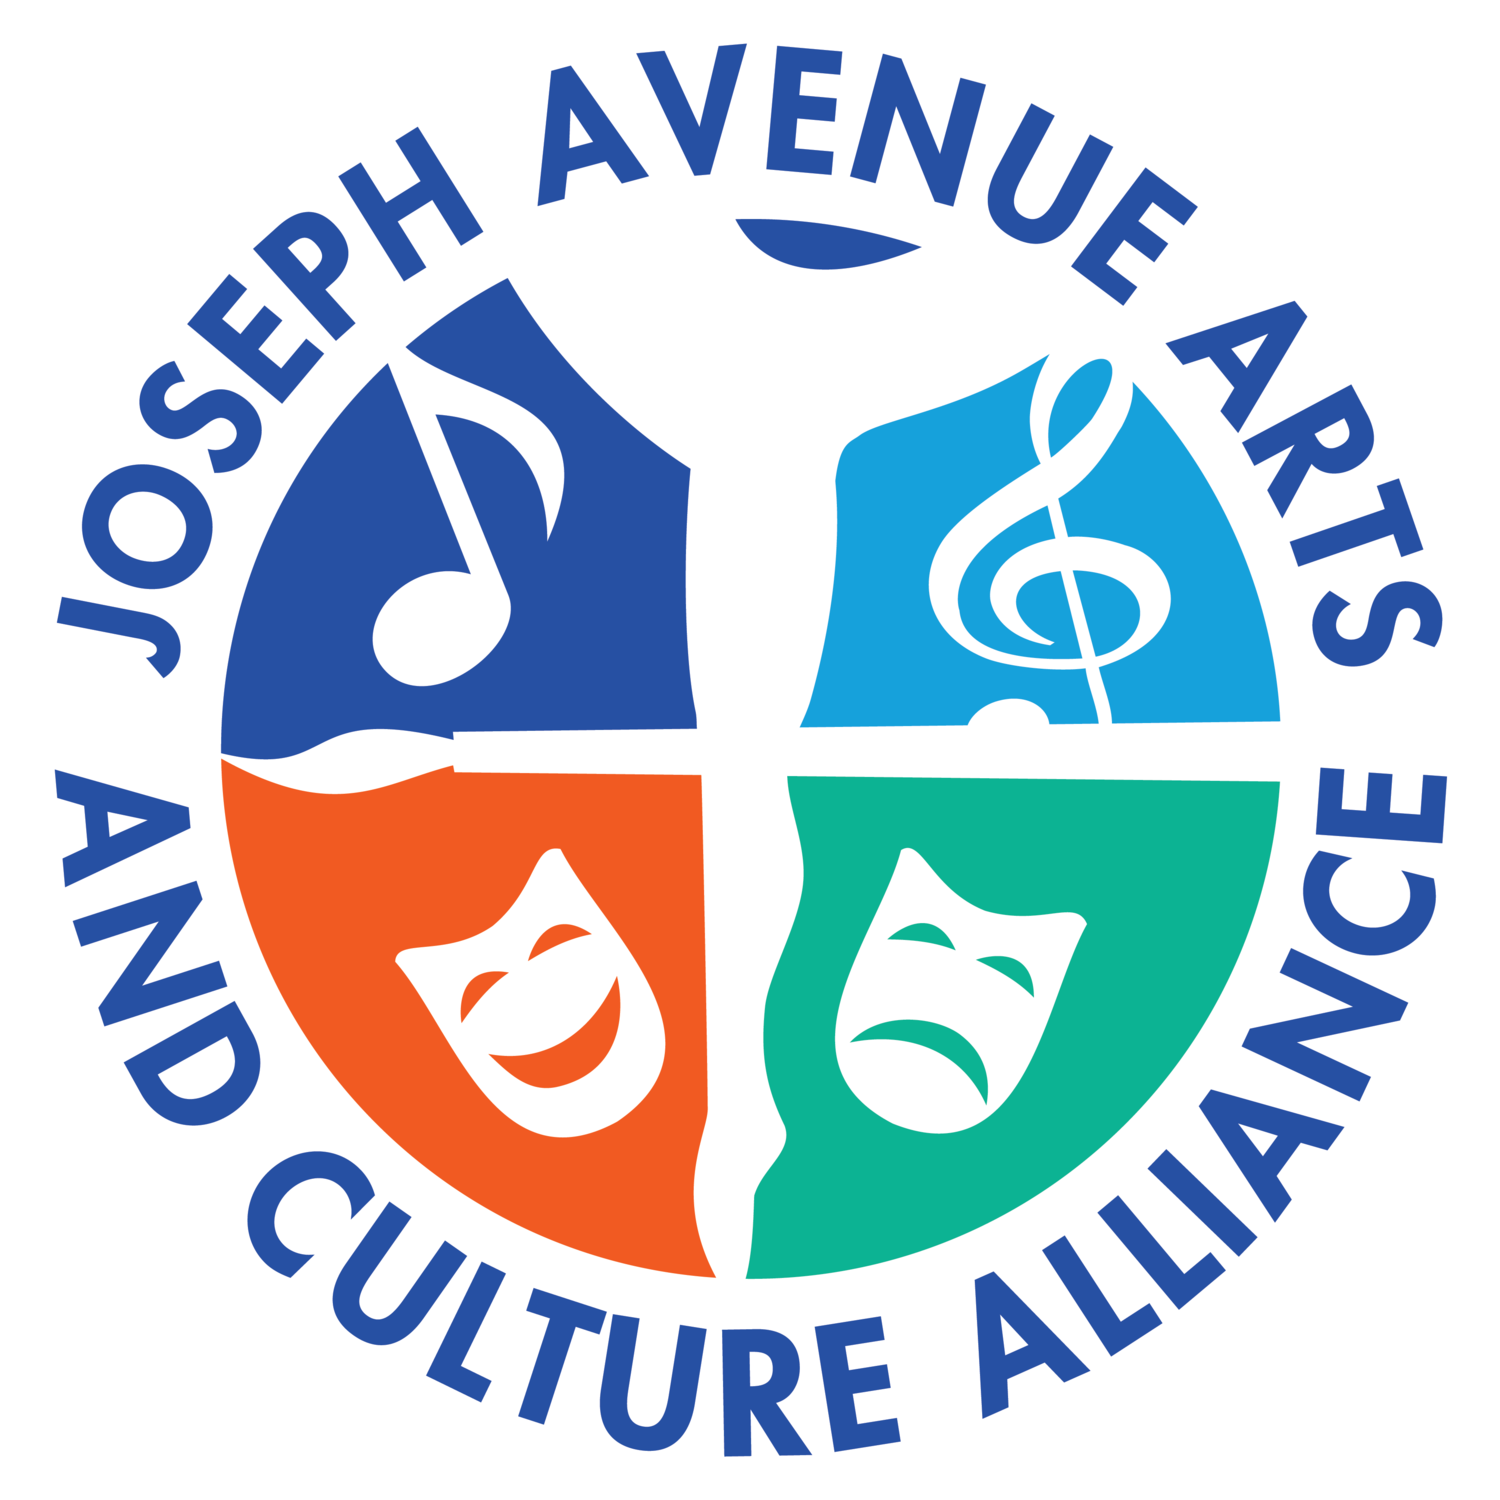 Joseph Avenue Arts and Culture Alliance